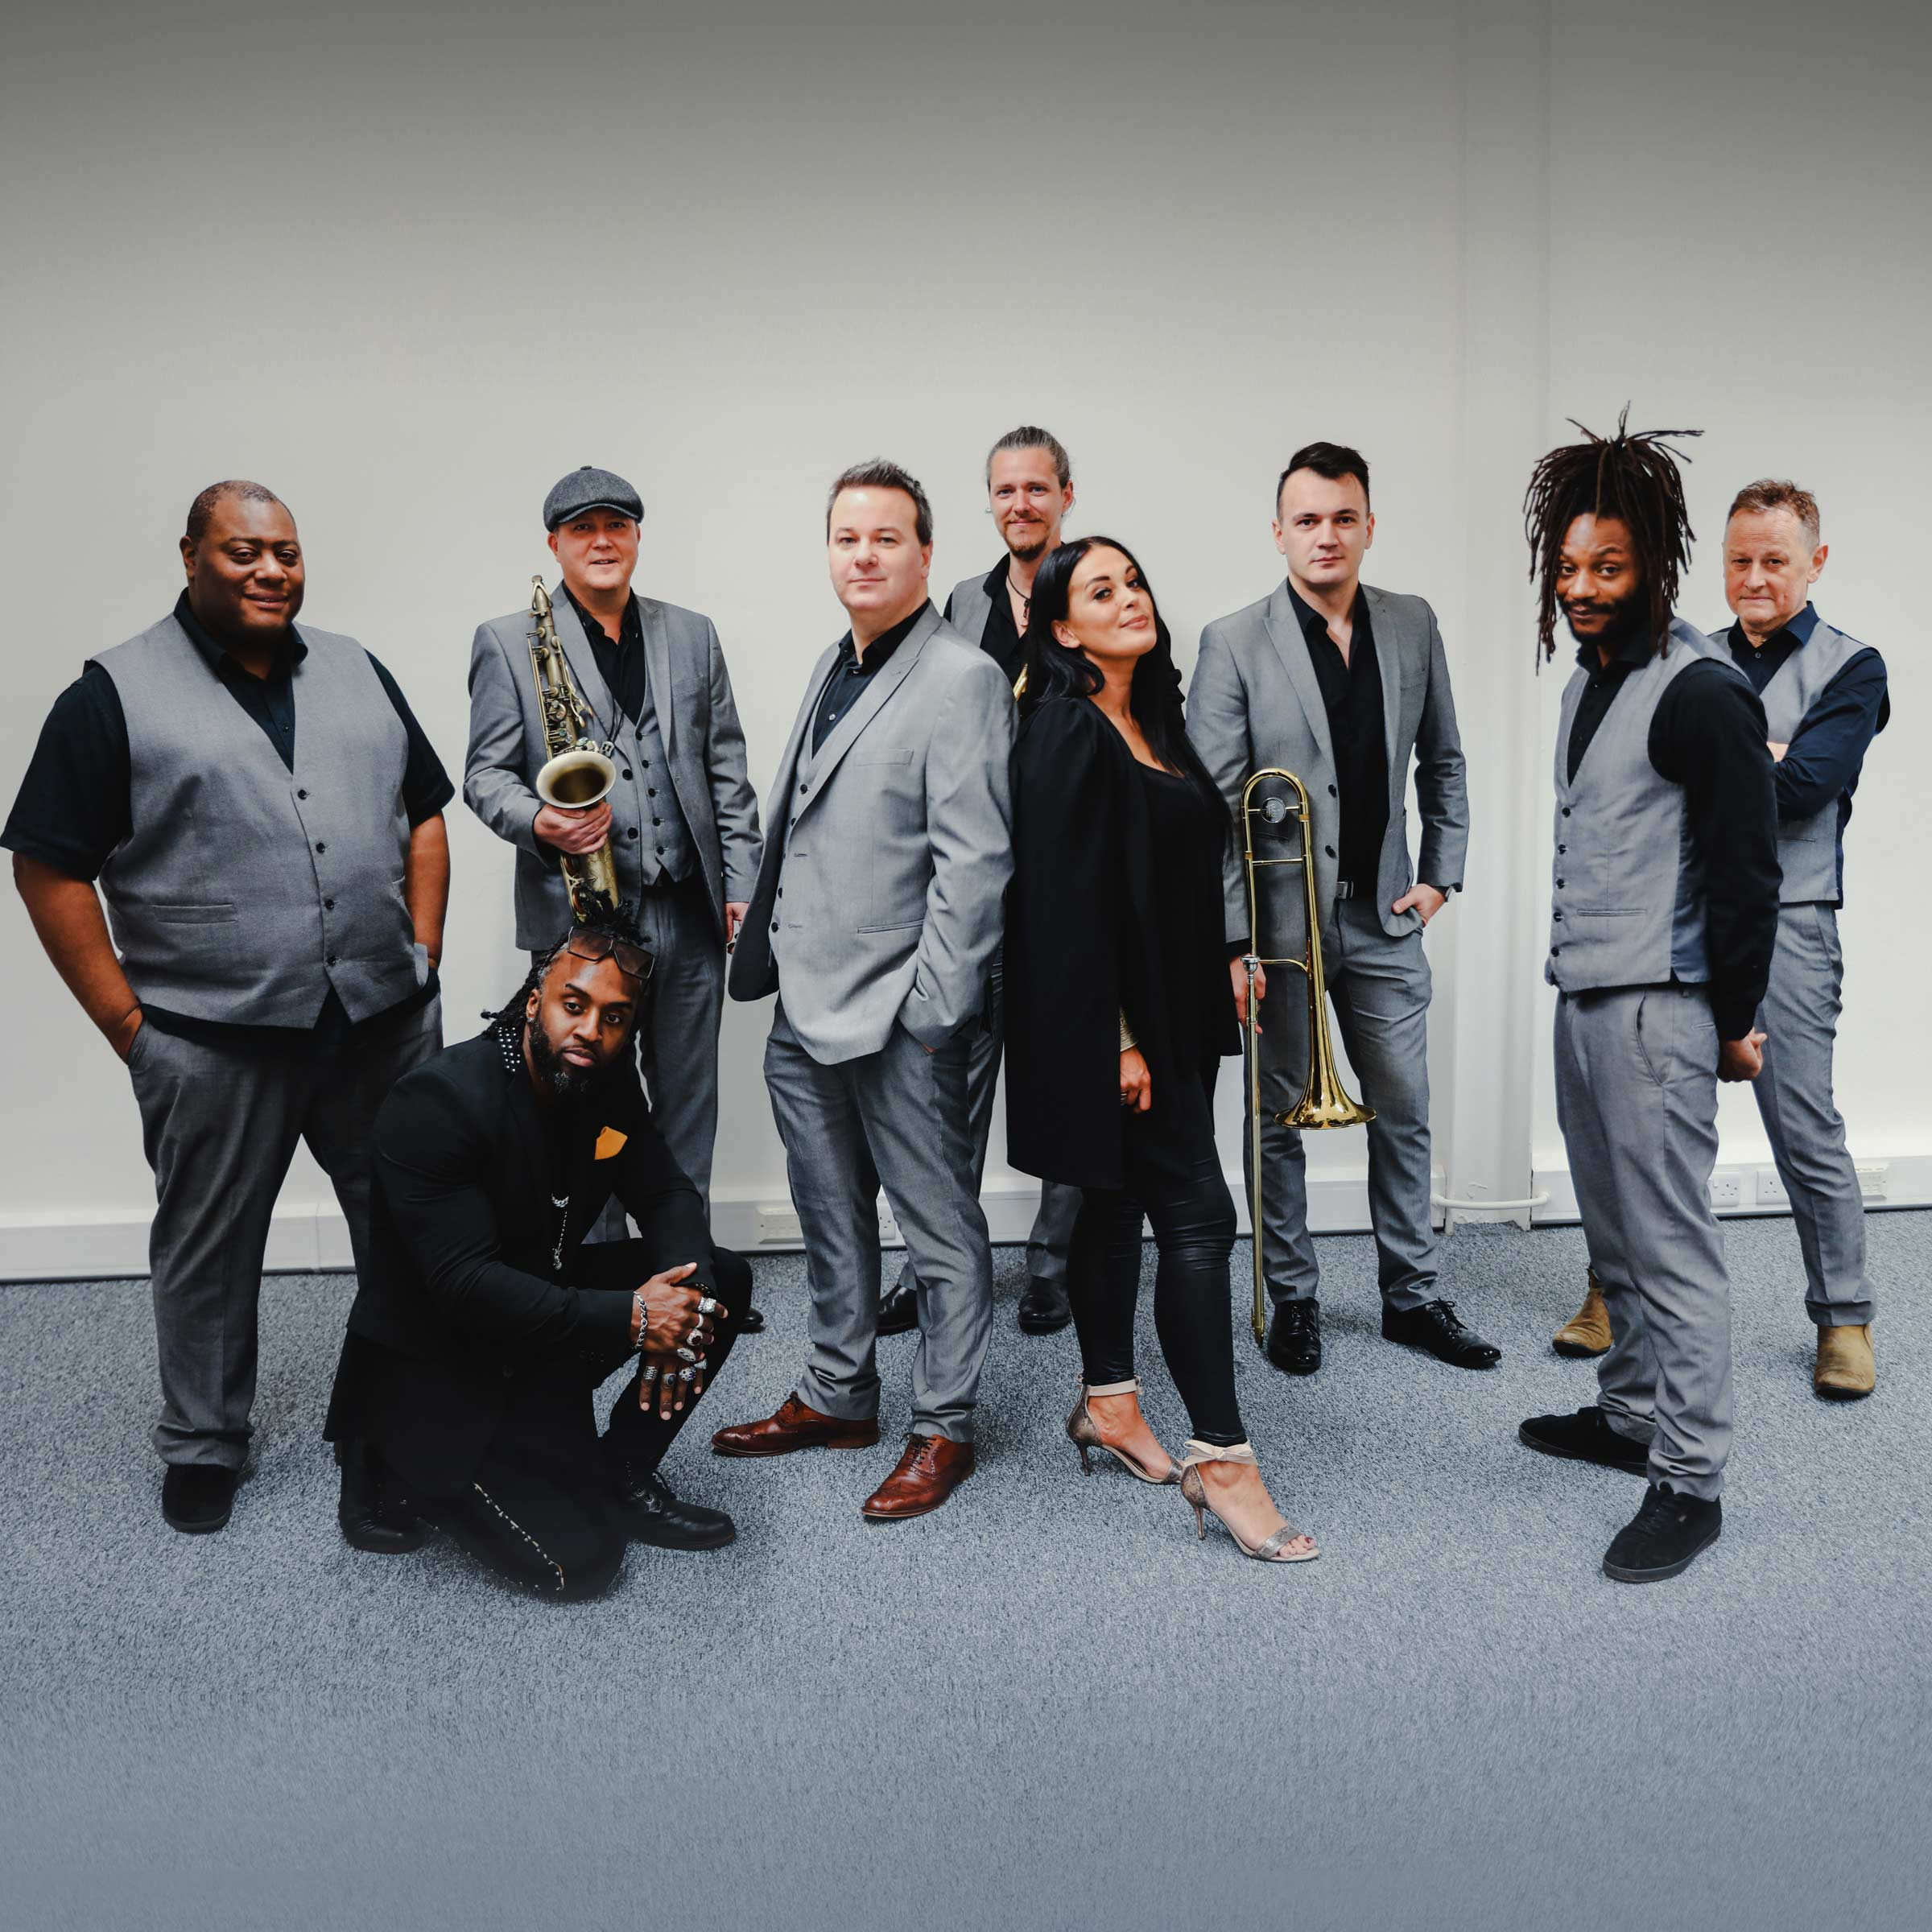 Detroit Soul Collective - 9 piece wedding band based in West Midlands